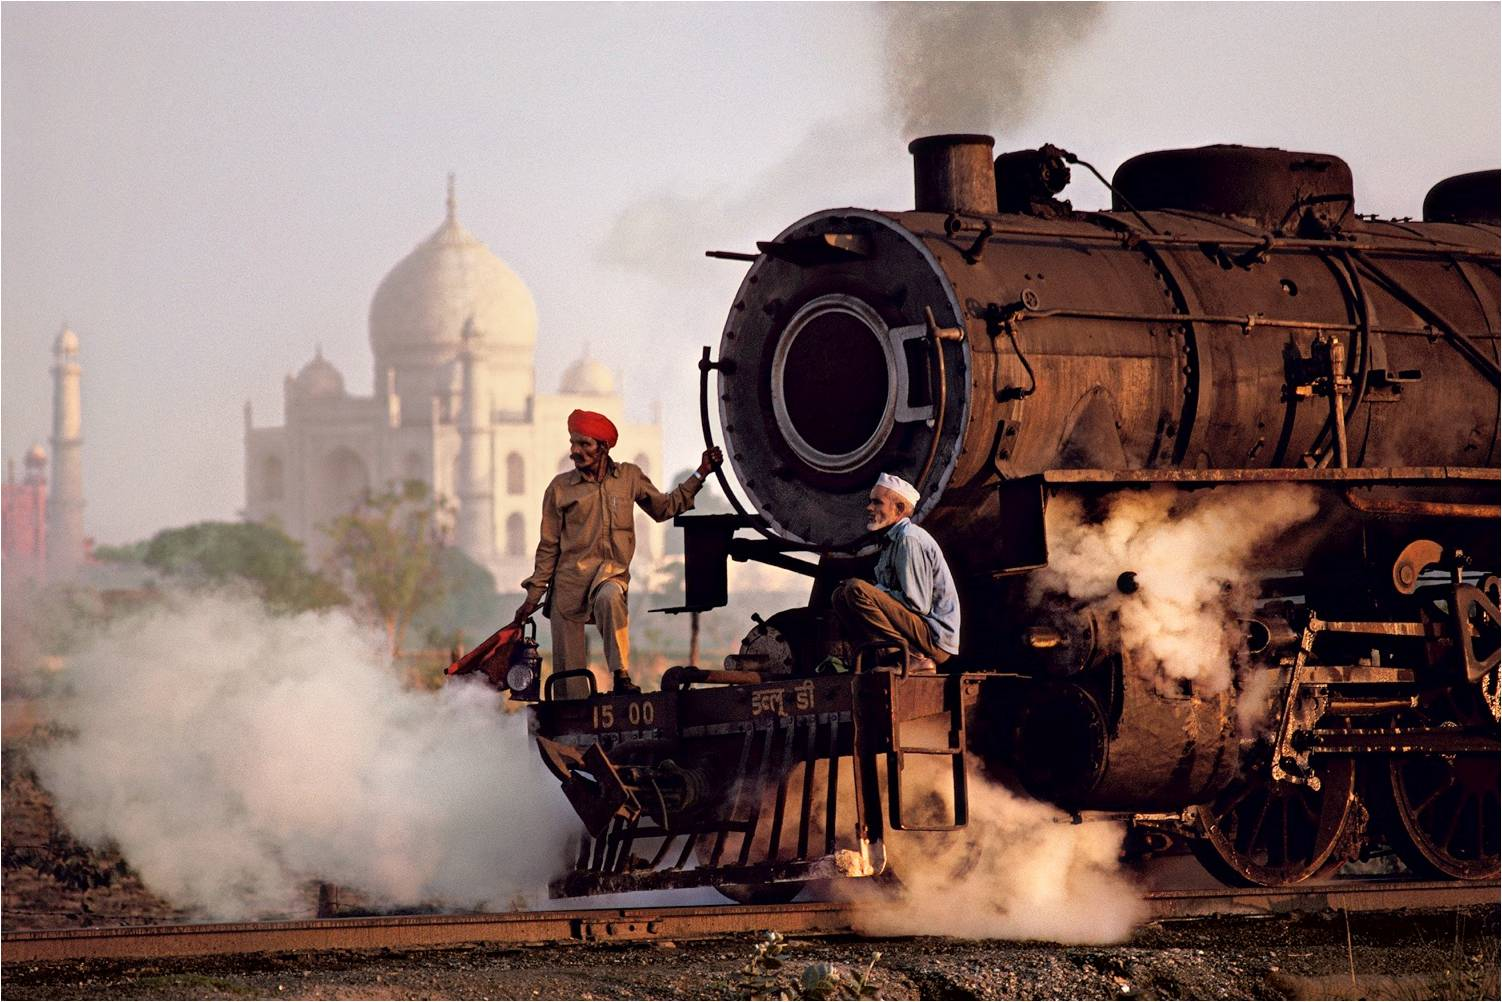 Steam engine passes in front of the Taj Mahal, 1983. (Photograph by Steve McCurry. Courtesy Phaidon/Roli Books)